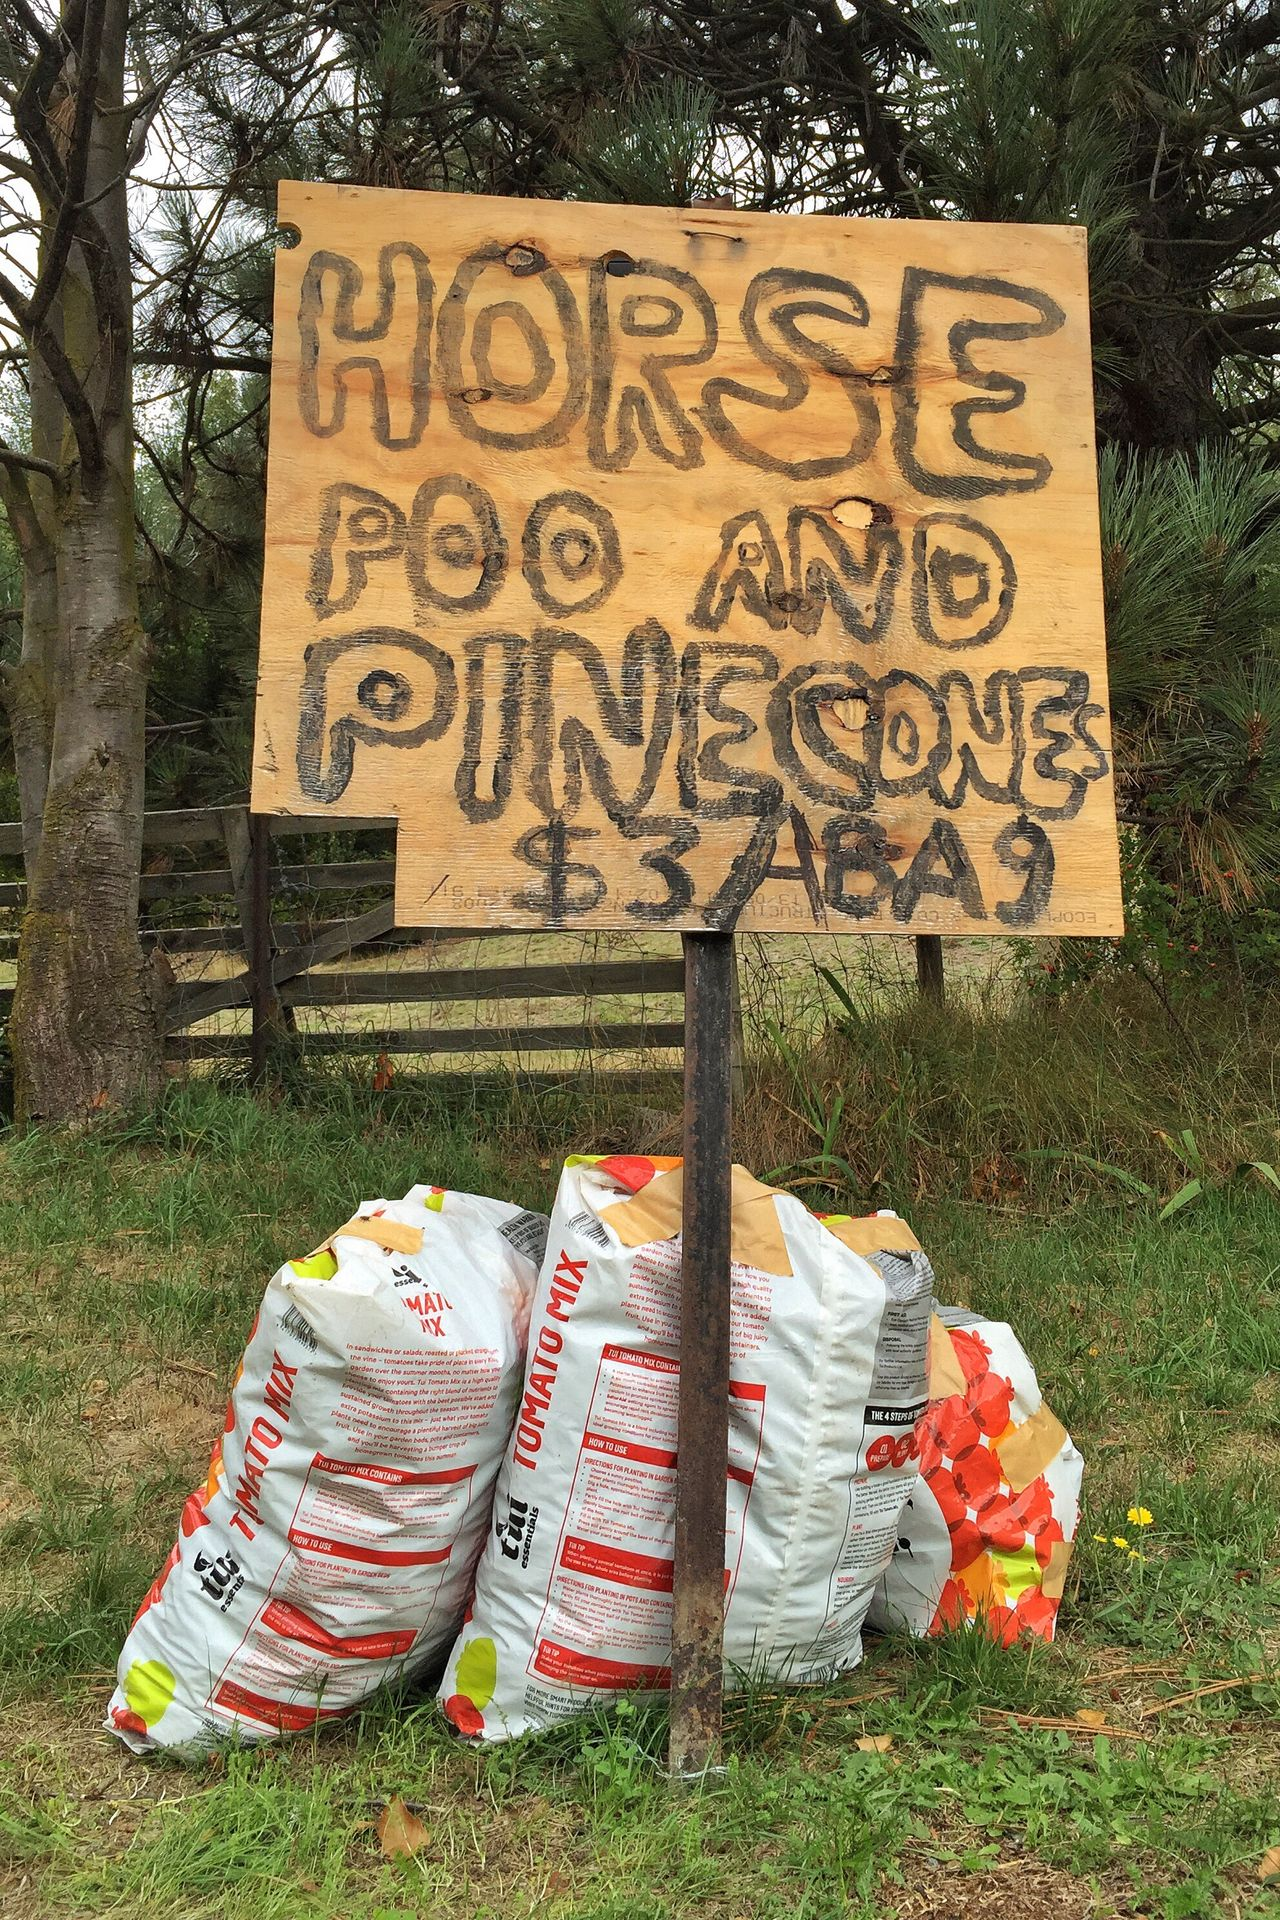 Horse Poop Pocket Money Chores Pinecones Cones